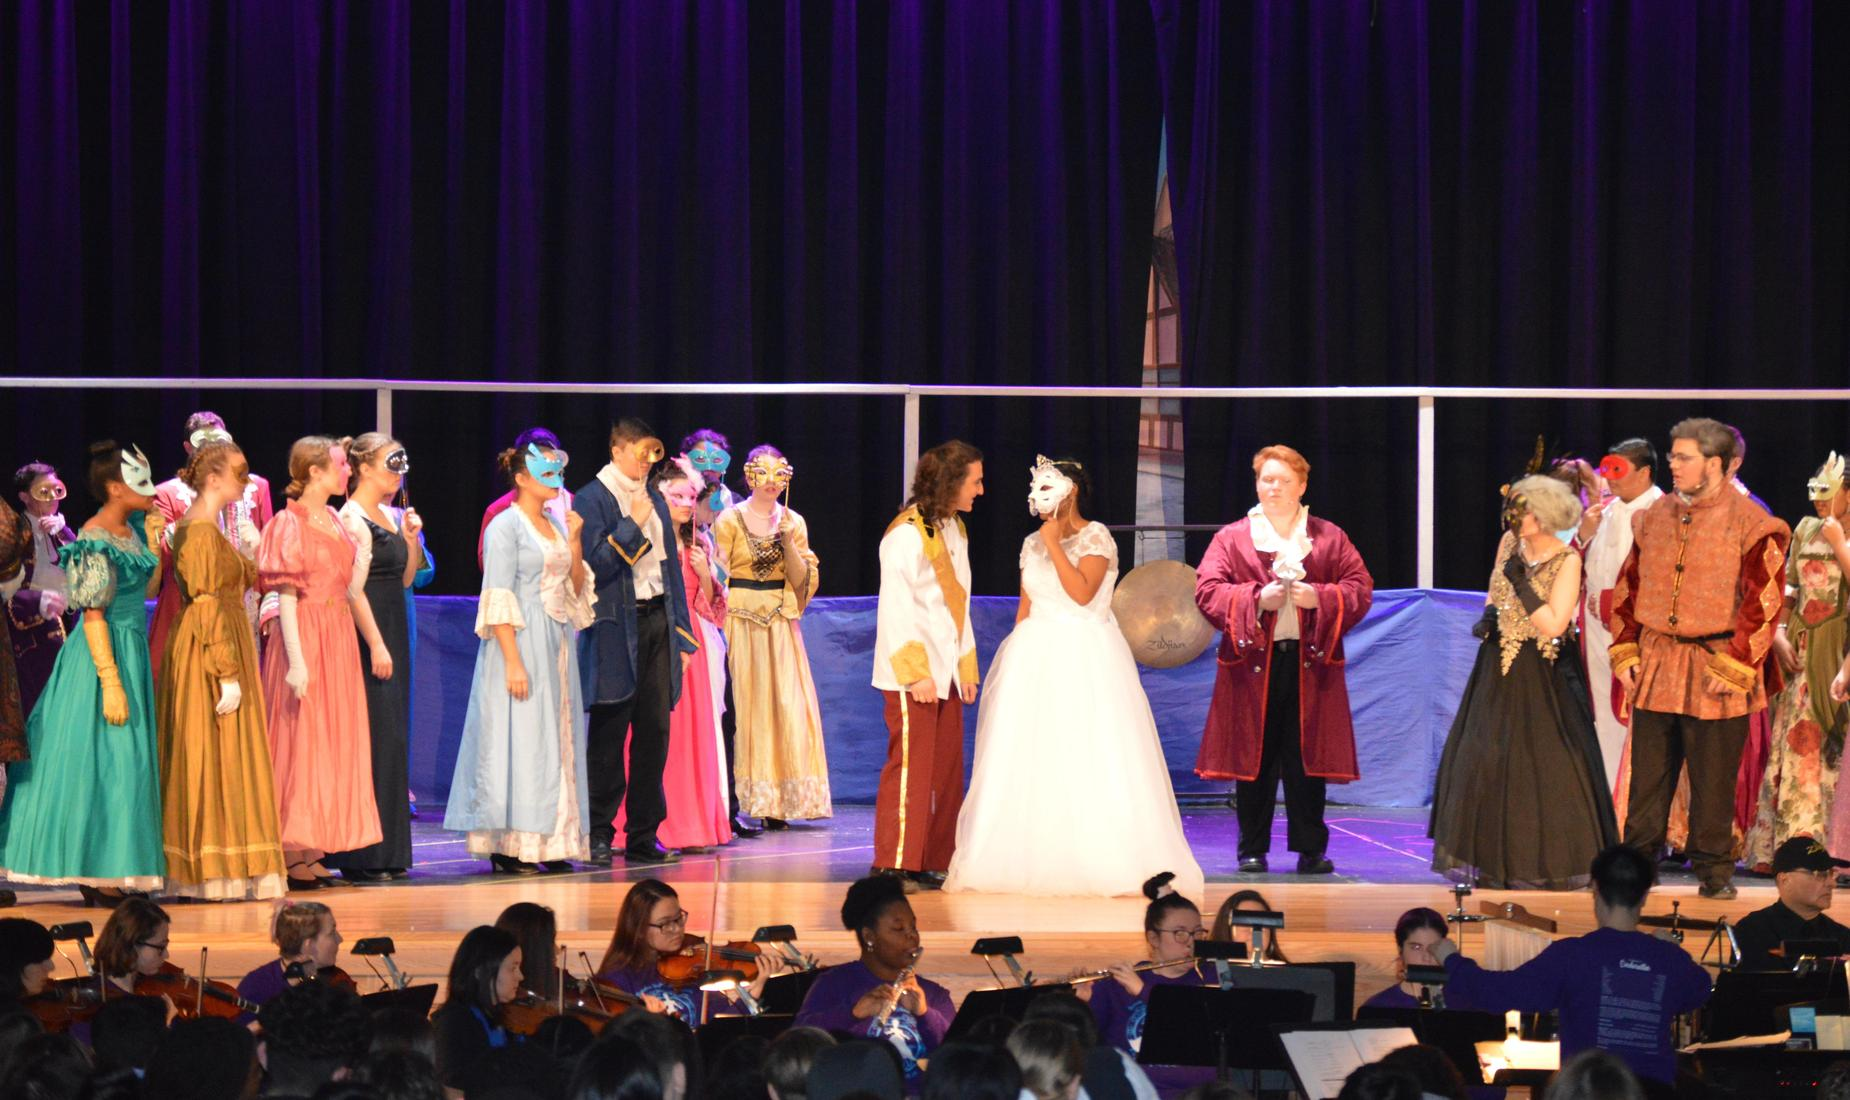 BHS Drama students, girls and boys, dressed in formal wear as they perform Cinderella